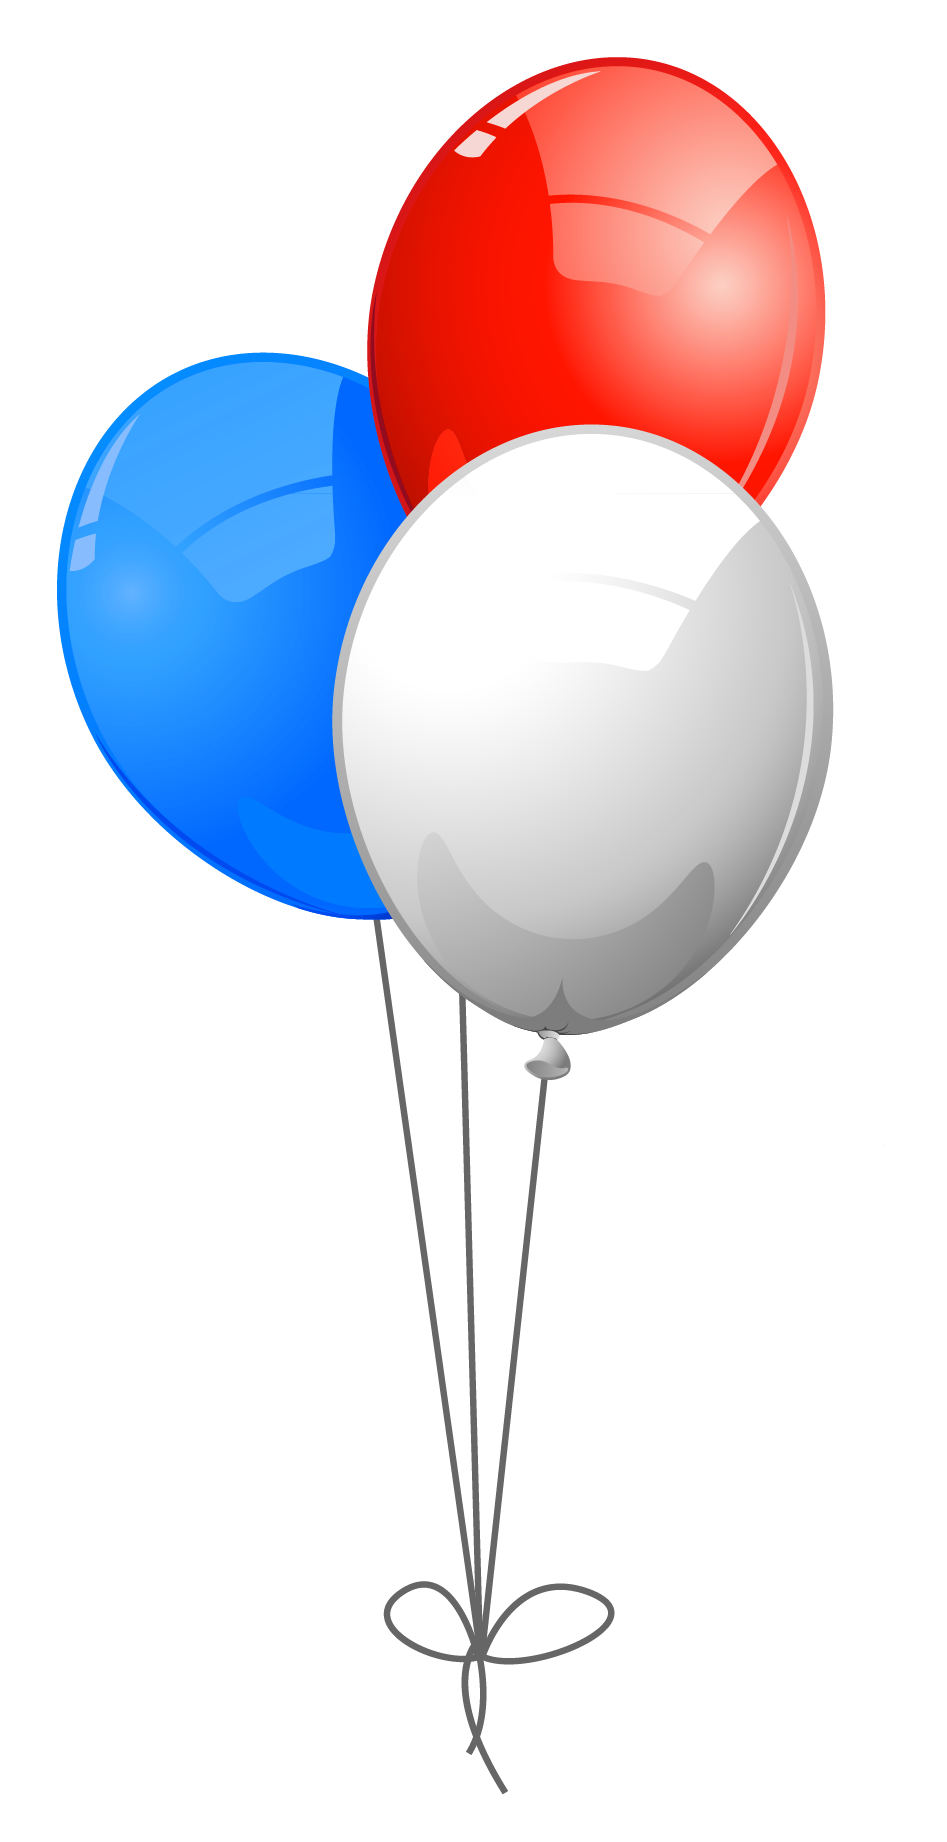 Free 4th of clipart balloons. Th july